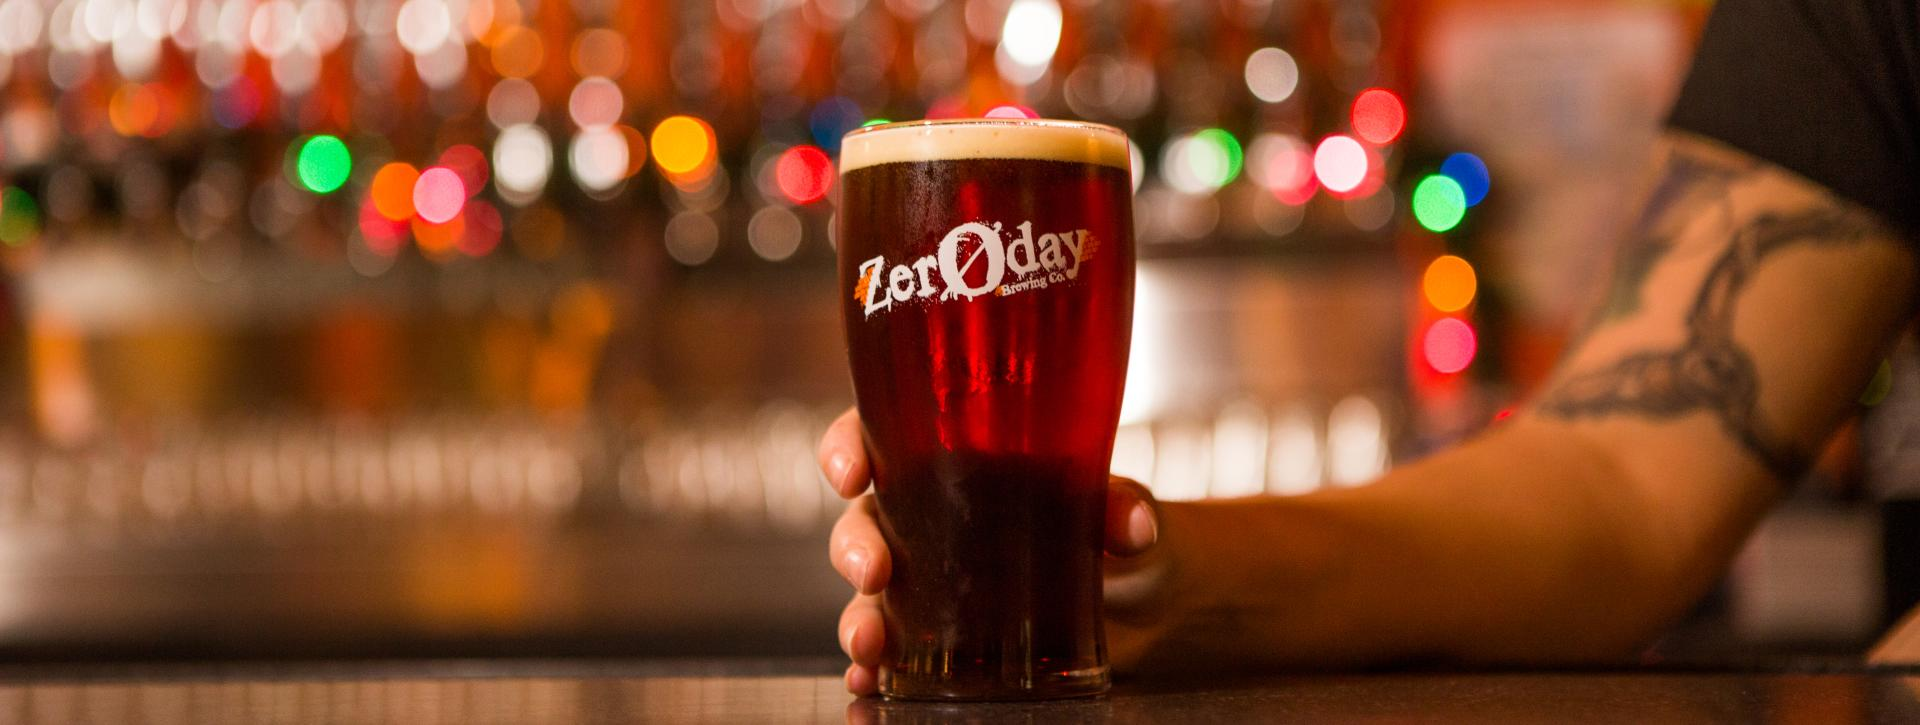 midtown-harrisburg-zeroday-brewing-company